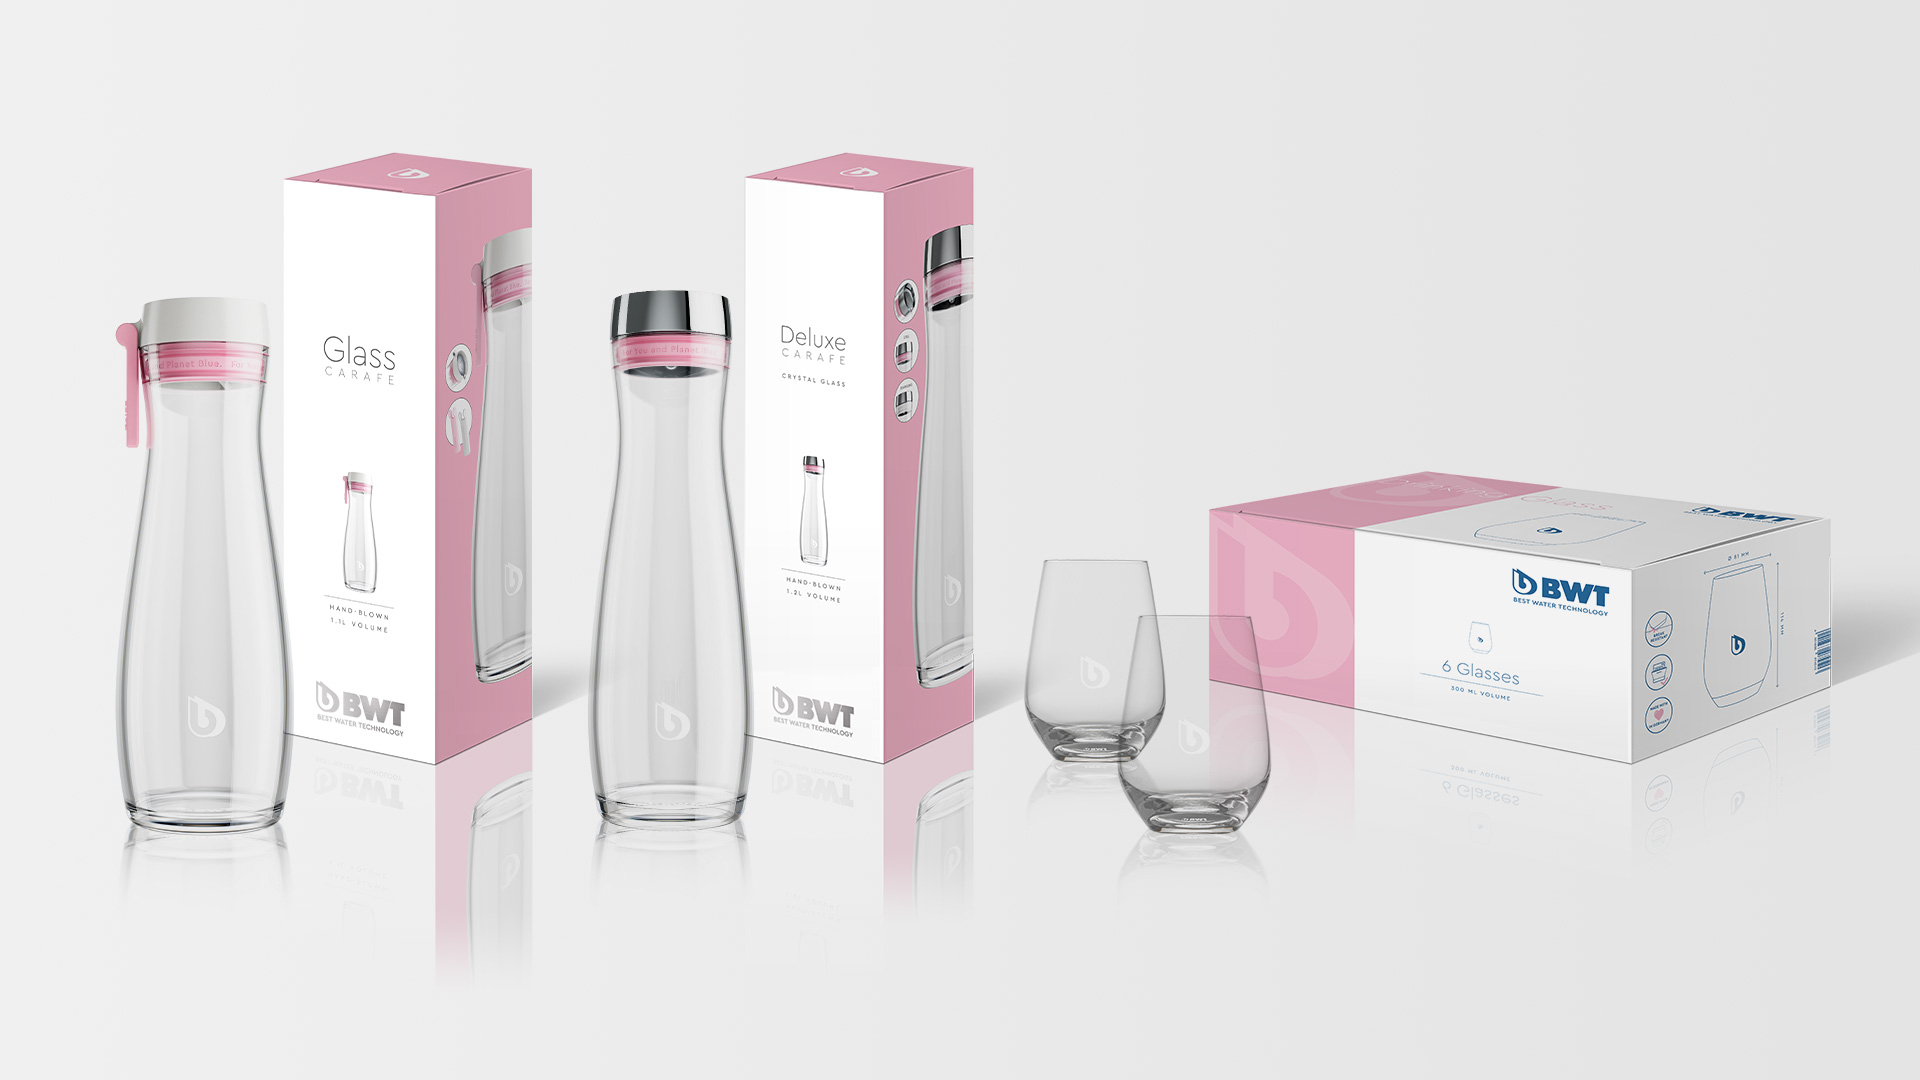 BWT Glassware Product Overview